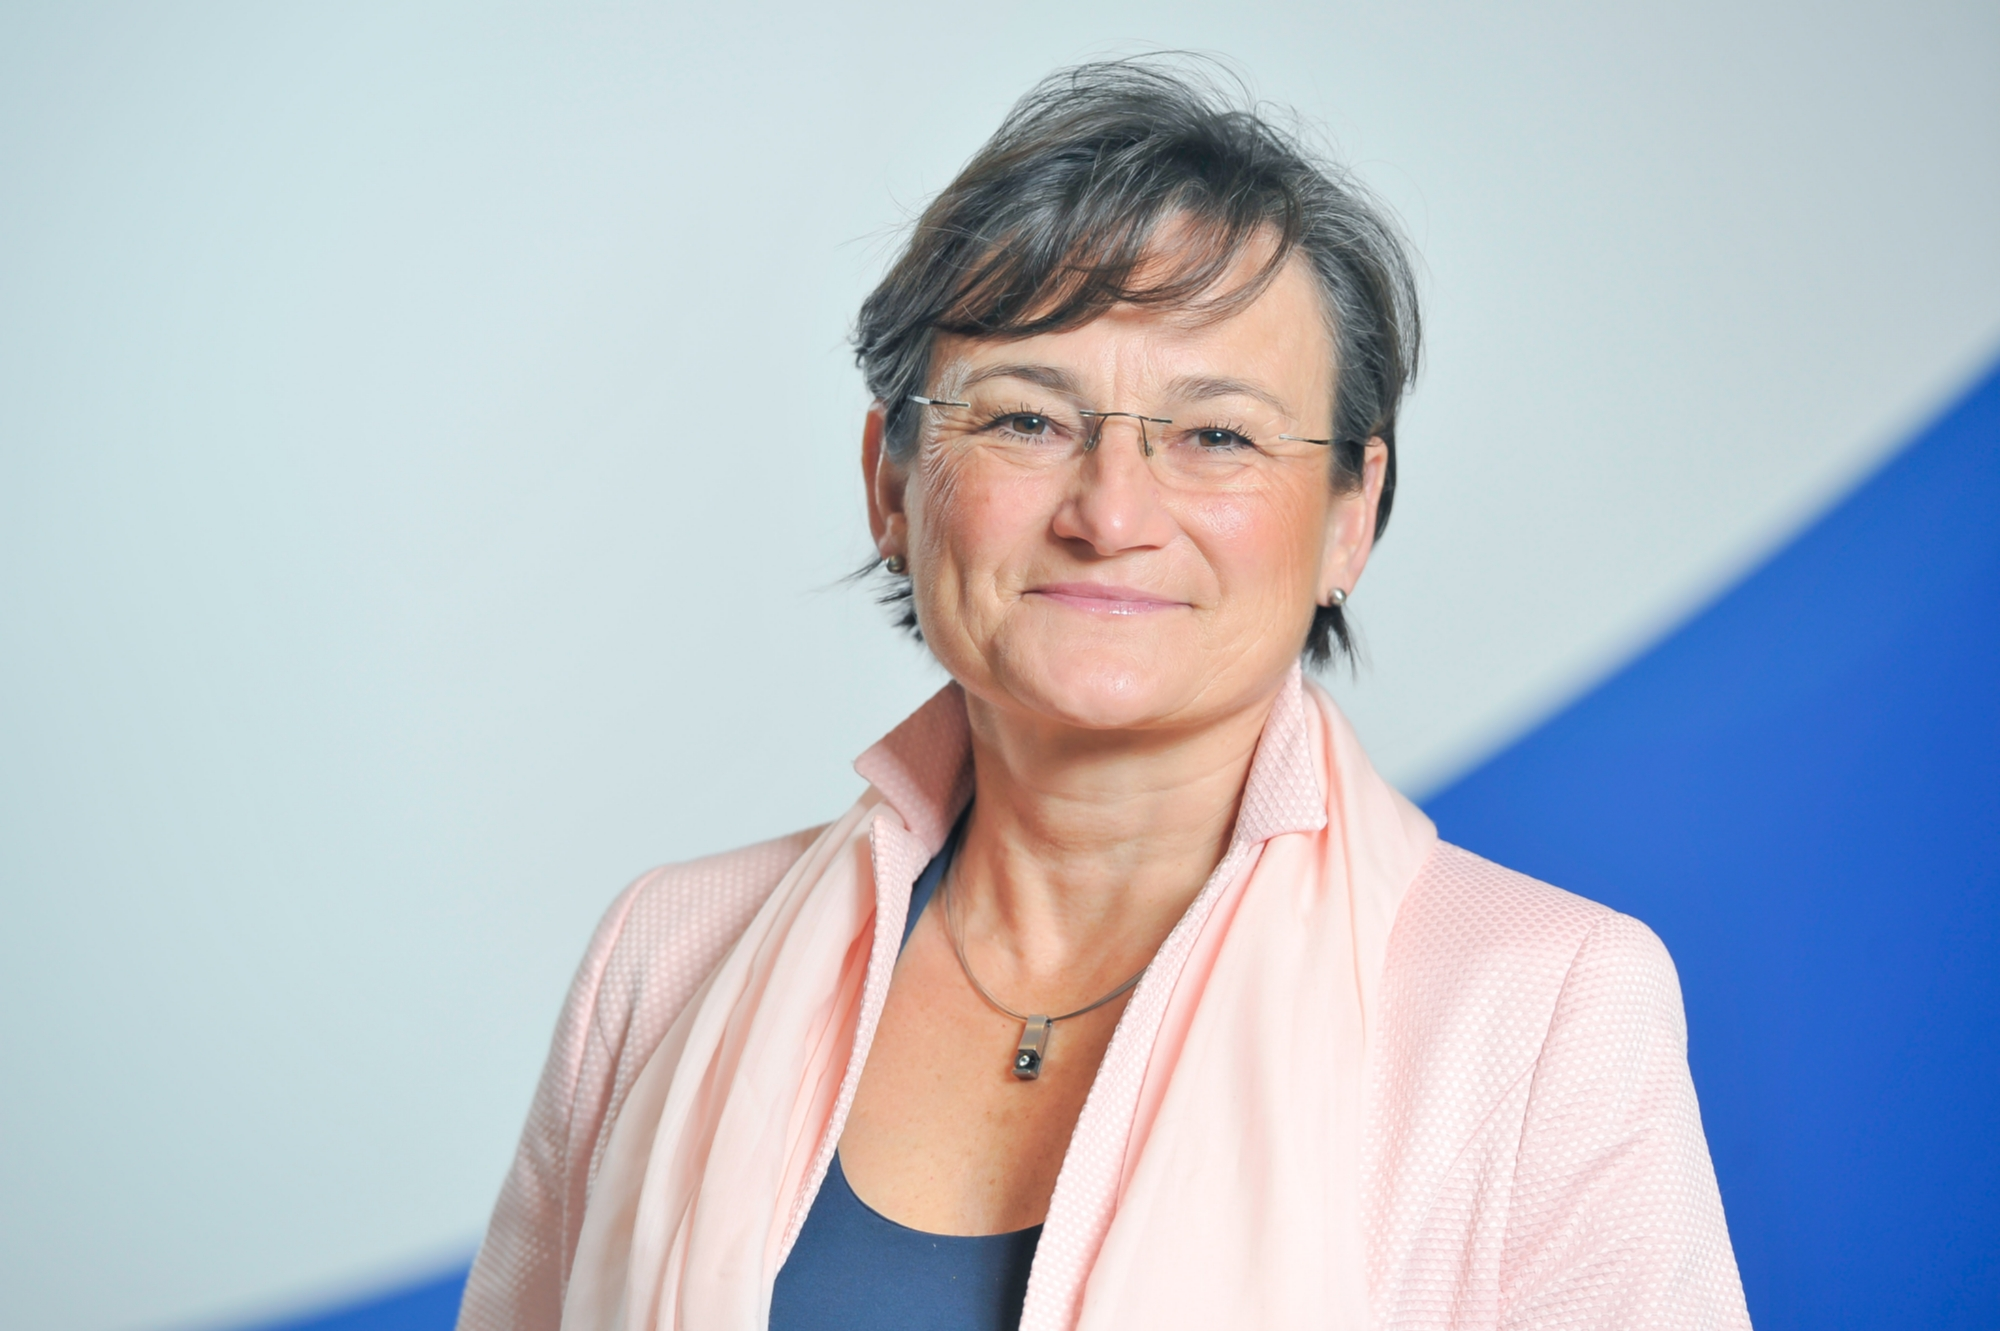 Vice Rector for Diversity and Internationalization